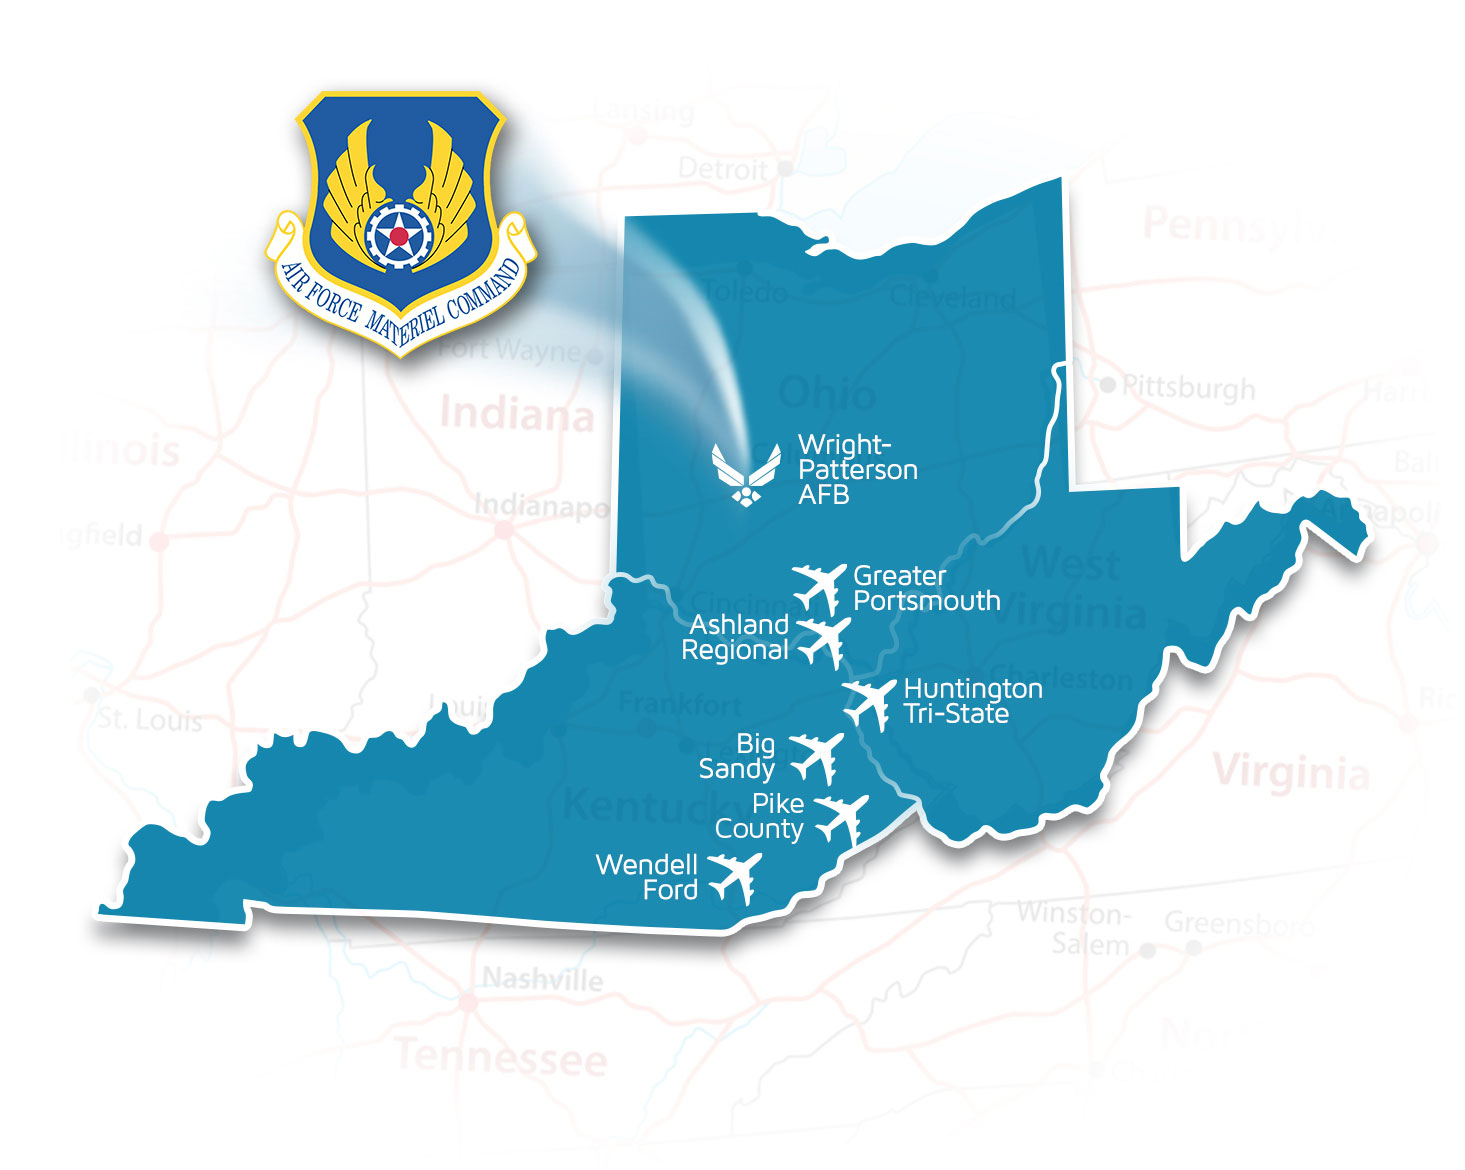 Wright-Patterson Air Force Base Located in the Appalachian Sky Region